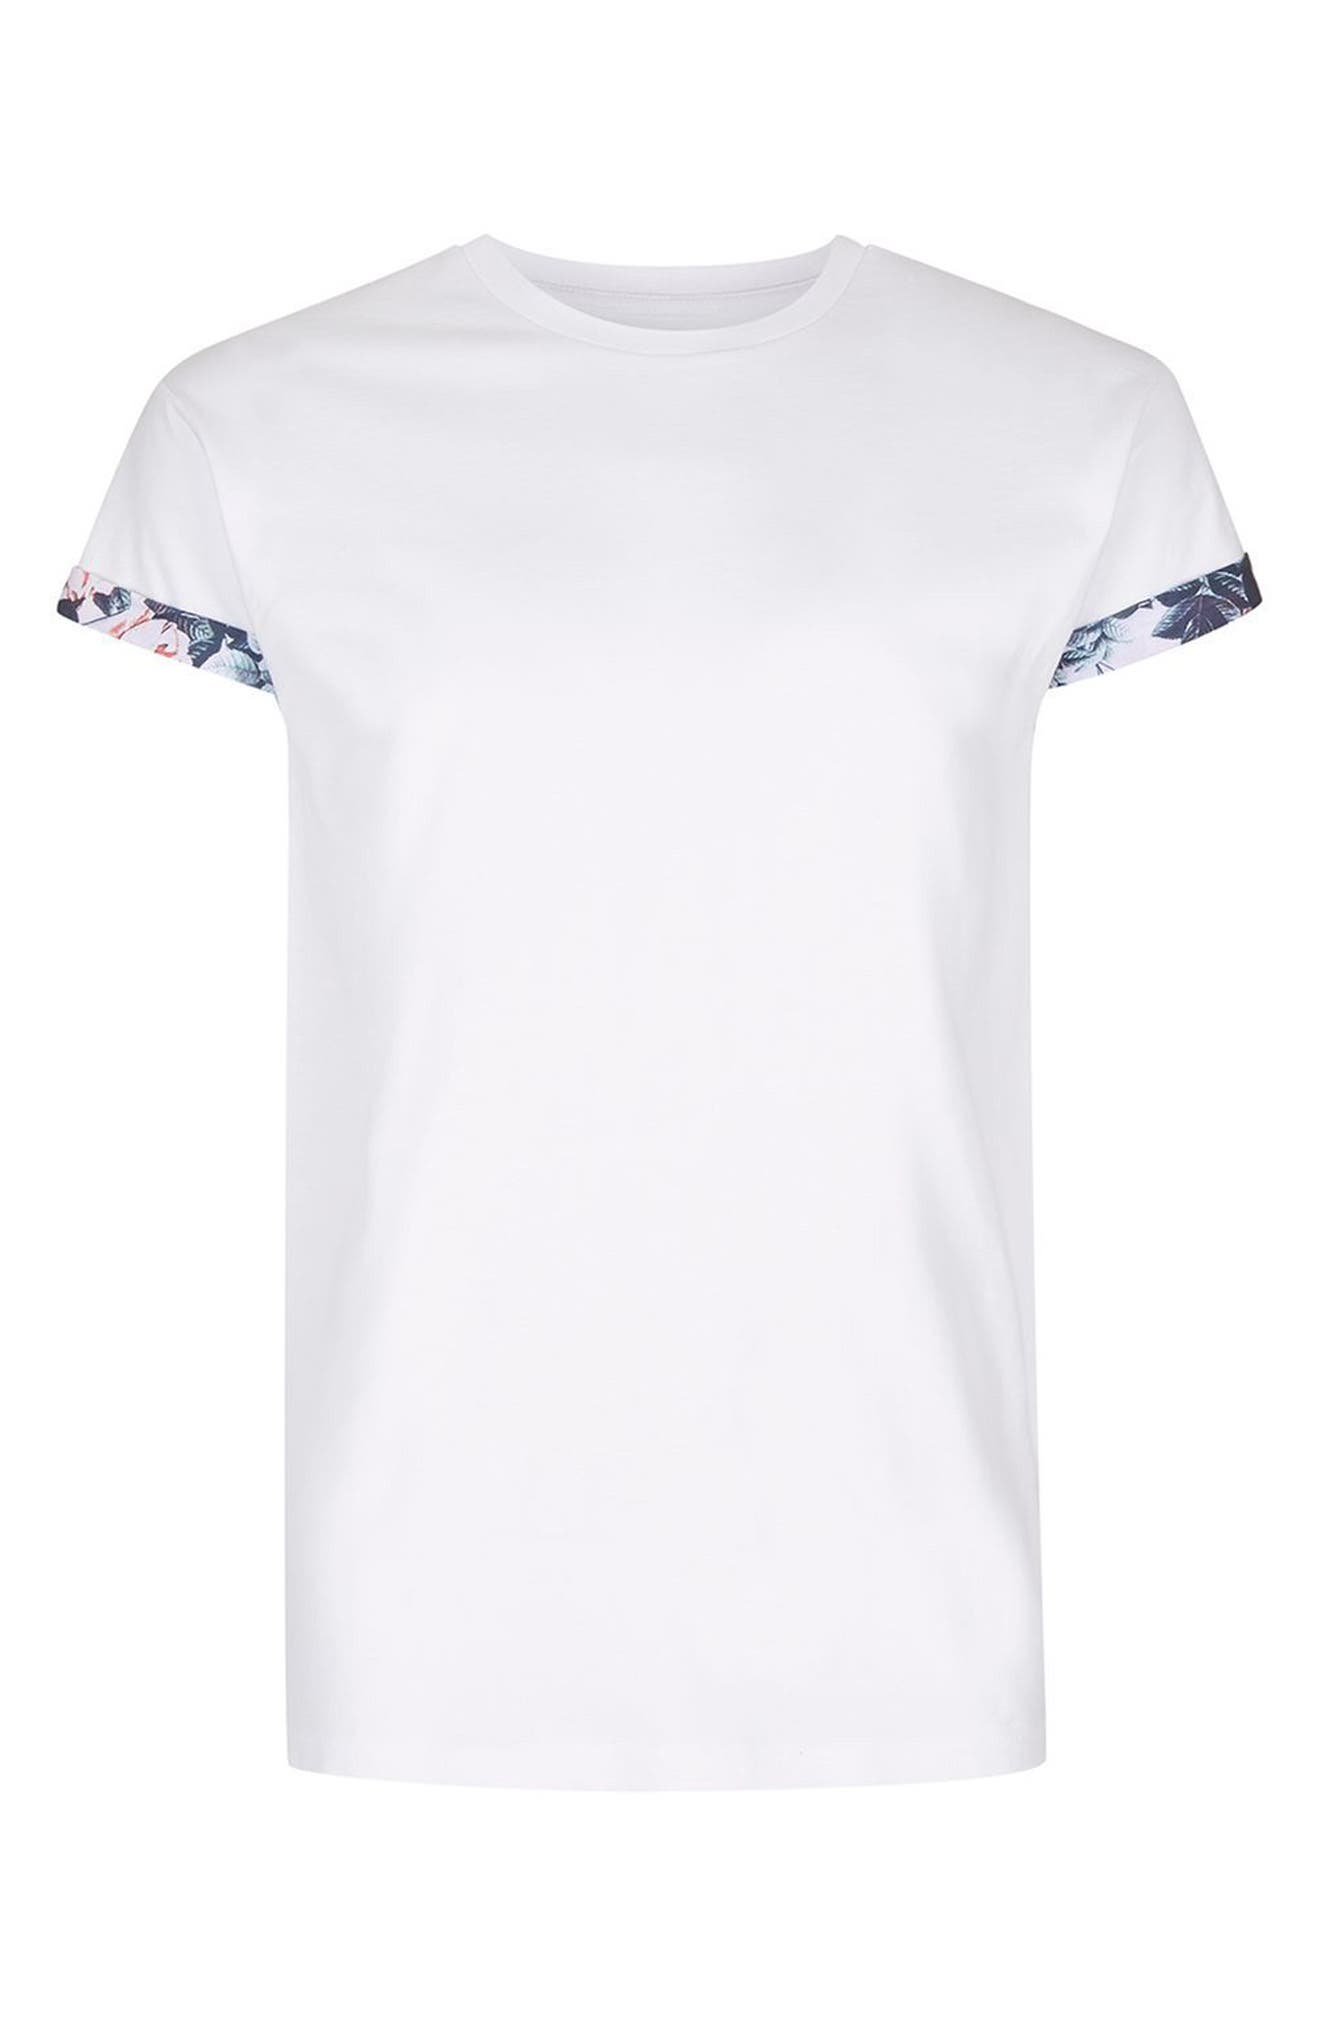 Floral Roller T-Shirt,                             Alternate thumbnail 4, color,                             White